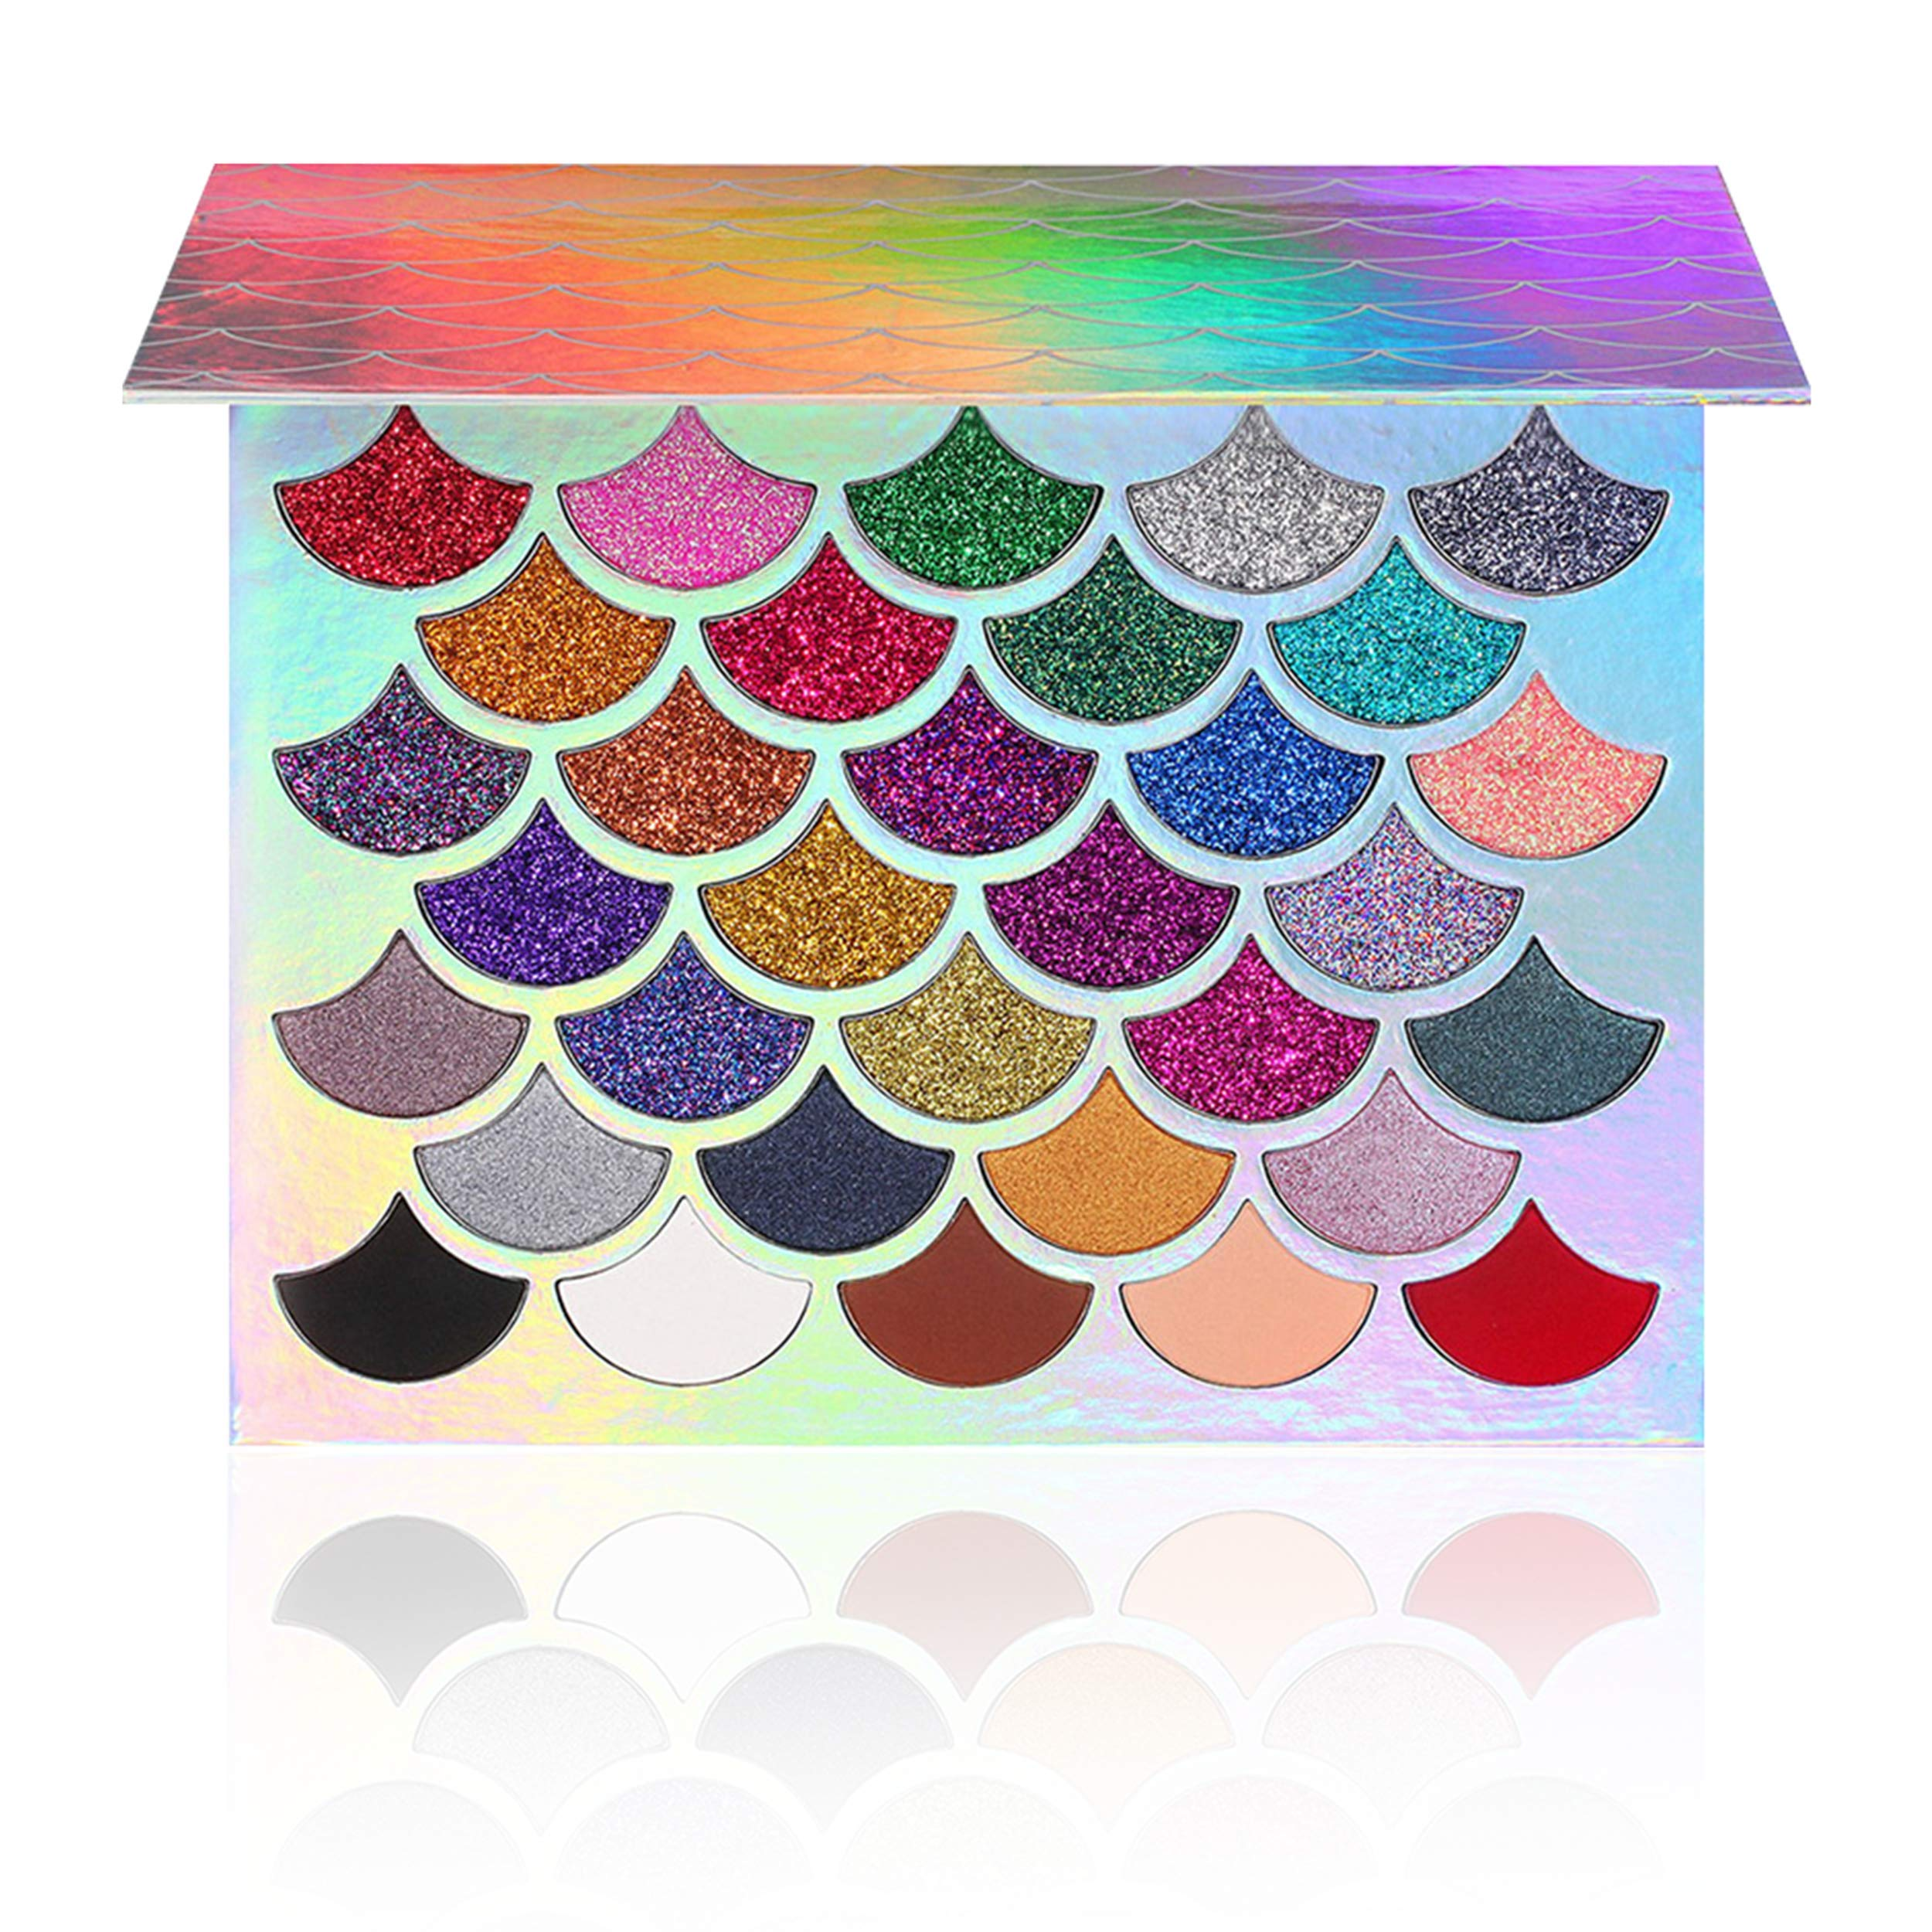 The Original Mermaid Glitter Eyeshadow Palette - Vegan & Cruelty Free - (32 Colors) - 21 Pressed Glitters, 6 Shimmery & 5 Matte Shades - Highly Pigmented - Waterproof & Long-Lasting by CLEOF